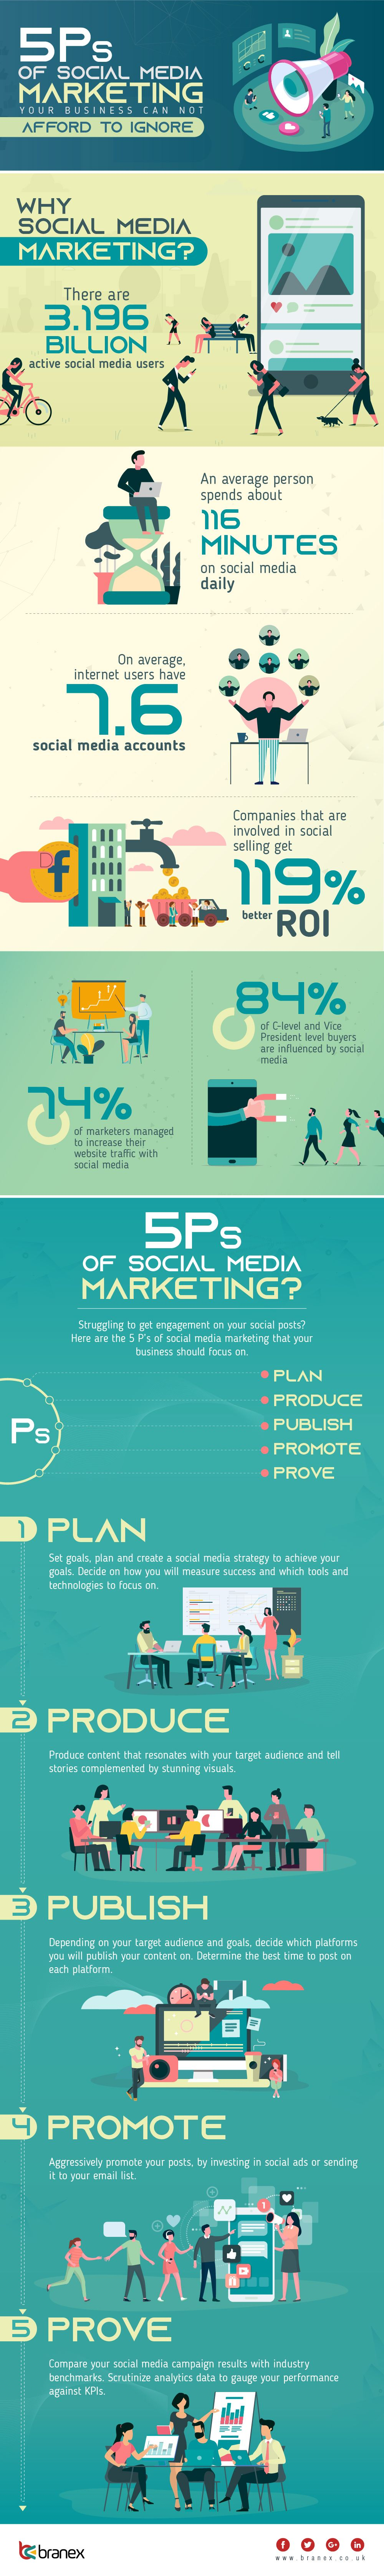 The 5 p's of social media marketing: plan, produce, publish, promote, prove